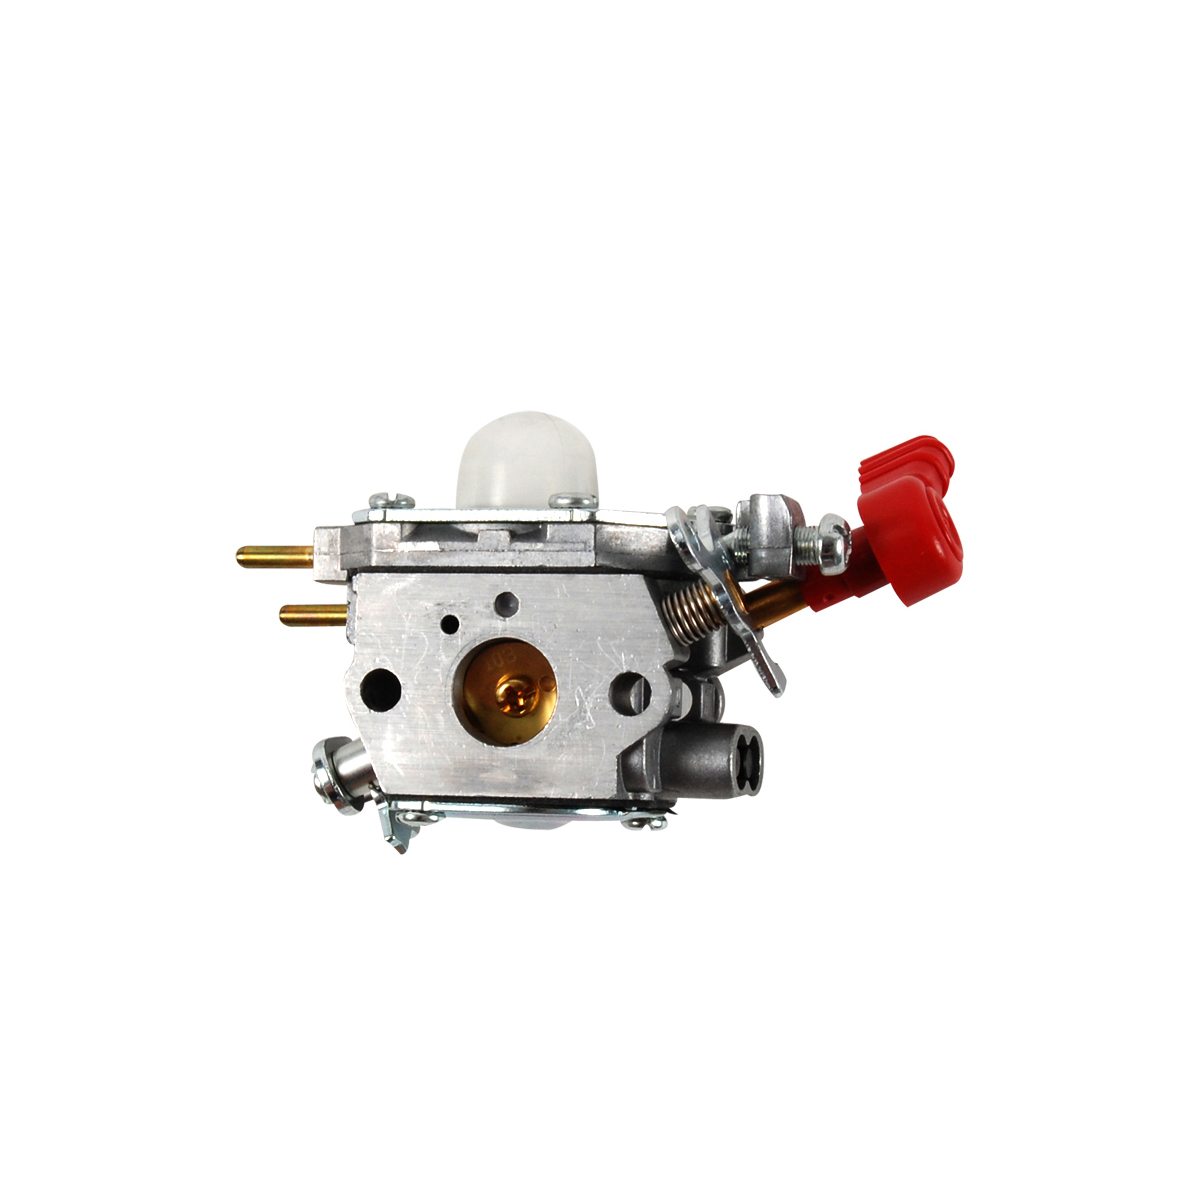 Carburetor ZAMA 753-06288